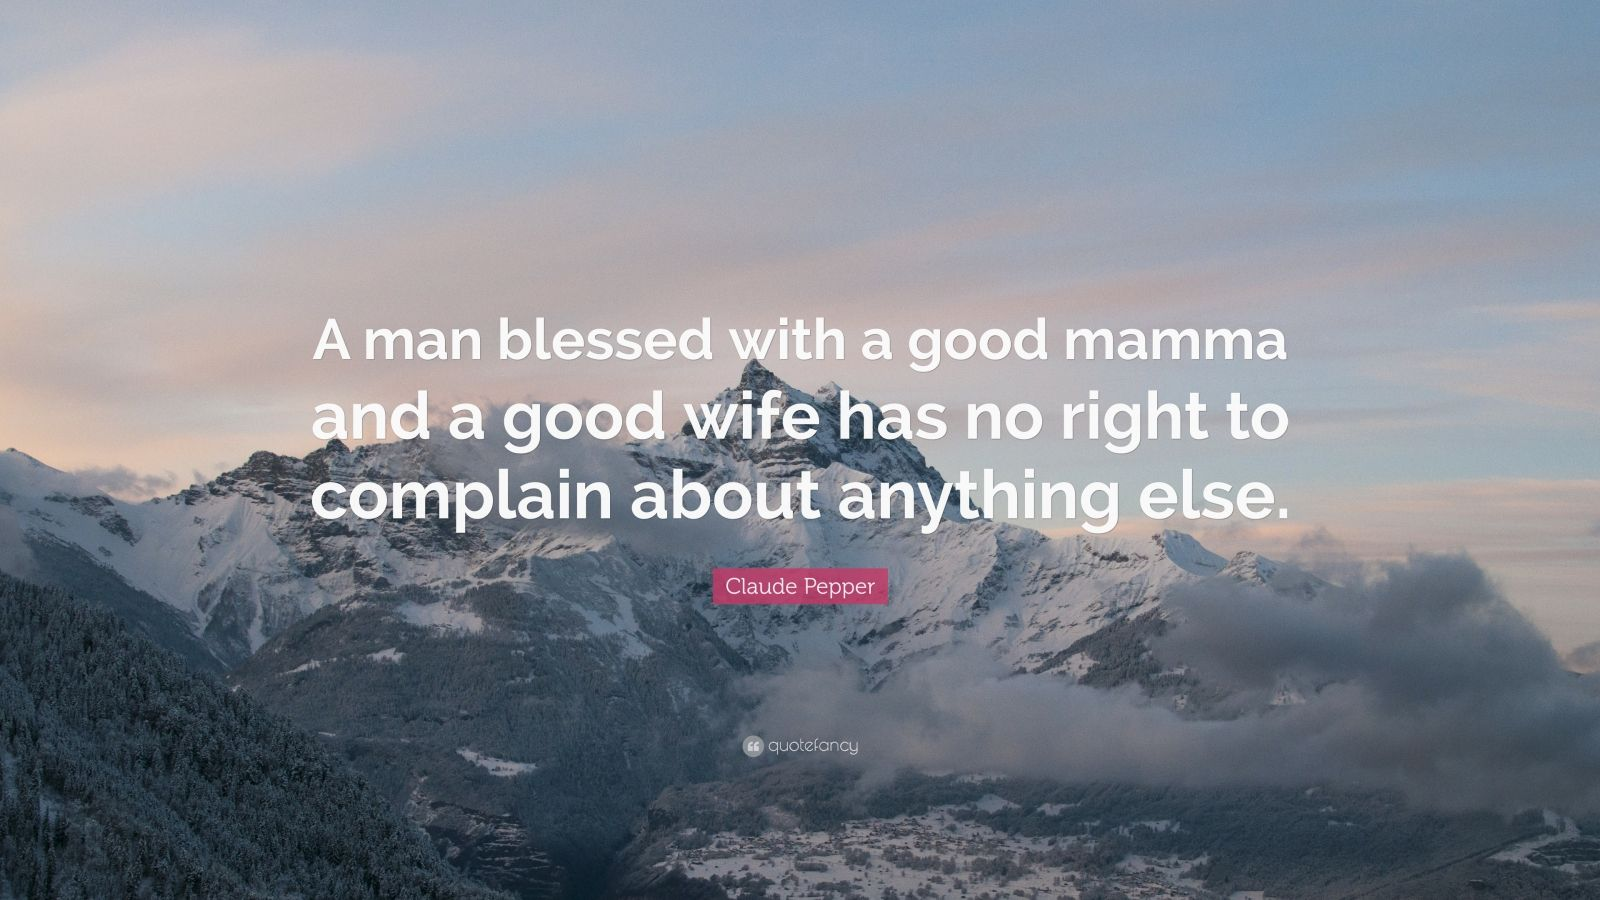 """Claude Pepper Quote: """"A man blessed with a good mamma and a good wife has no right to complain about anything else."""""""